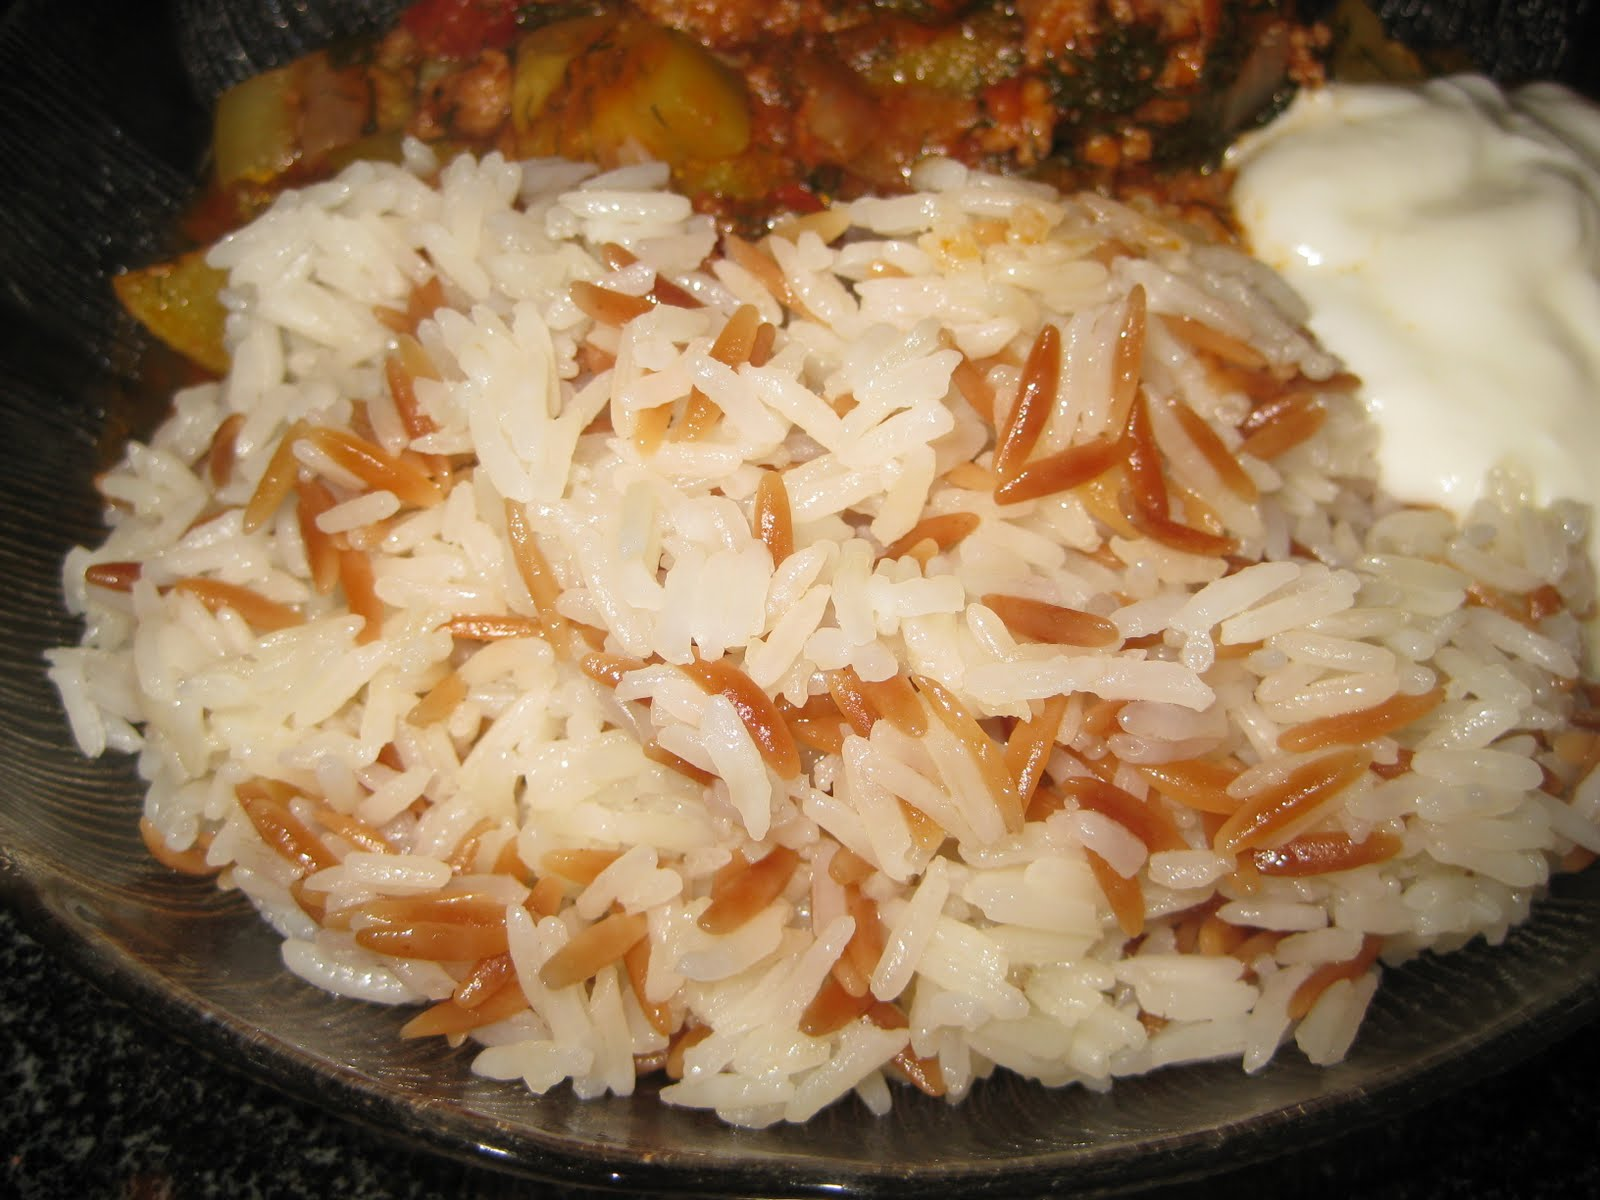 Turkish Rice Recipe | RecipeDose - Quick And Easy Cooking Recipes For Home Cooks